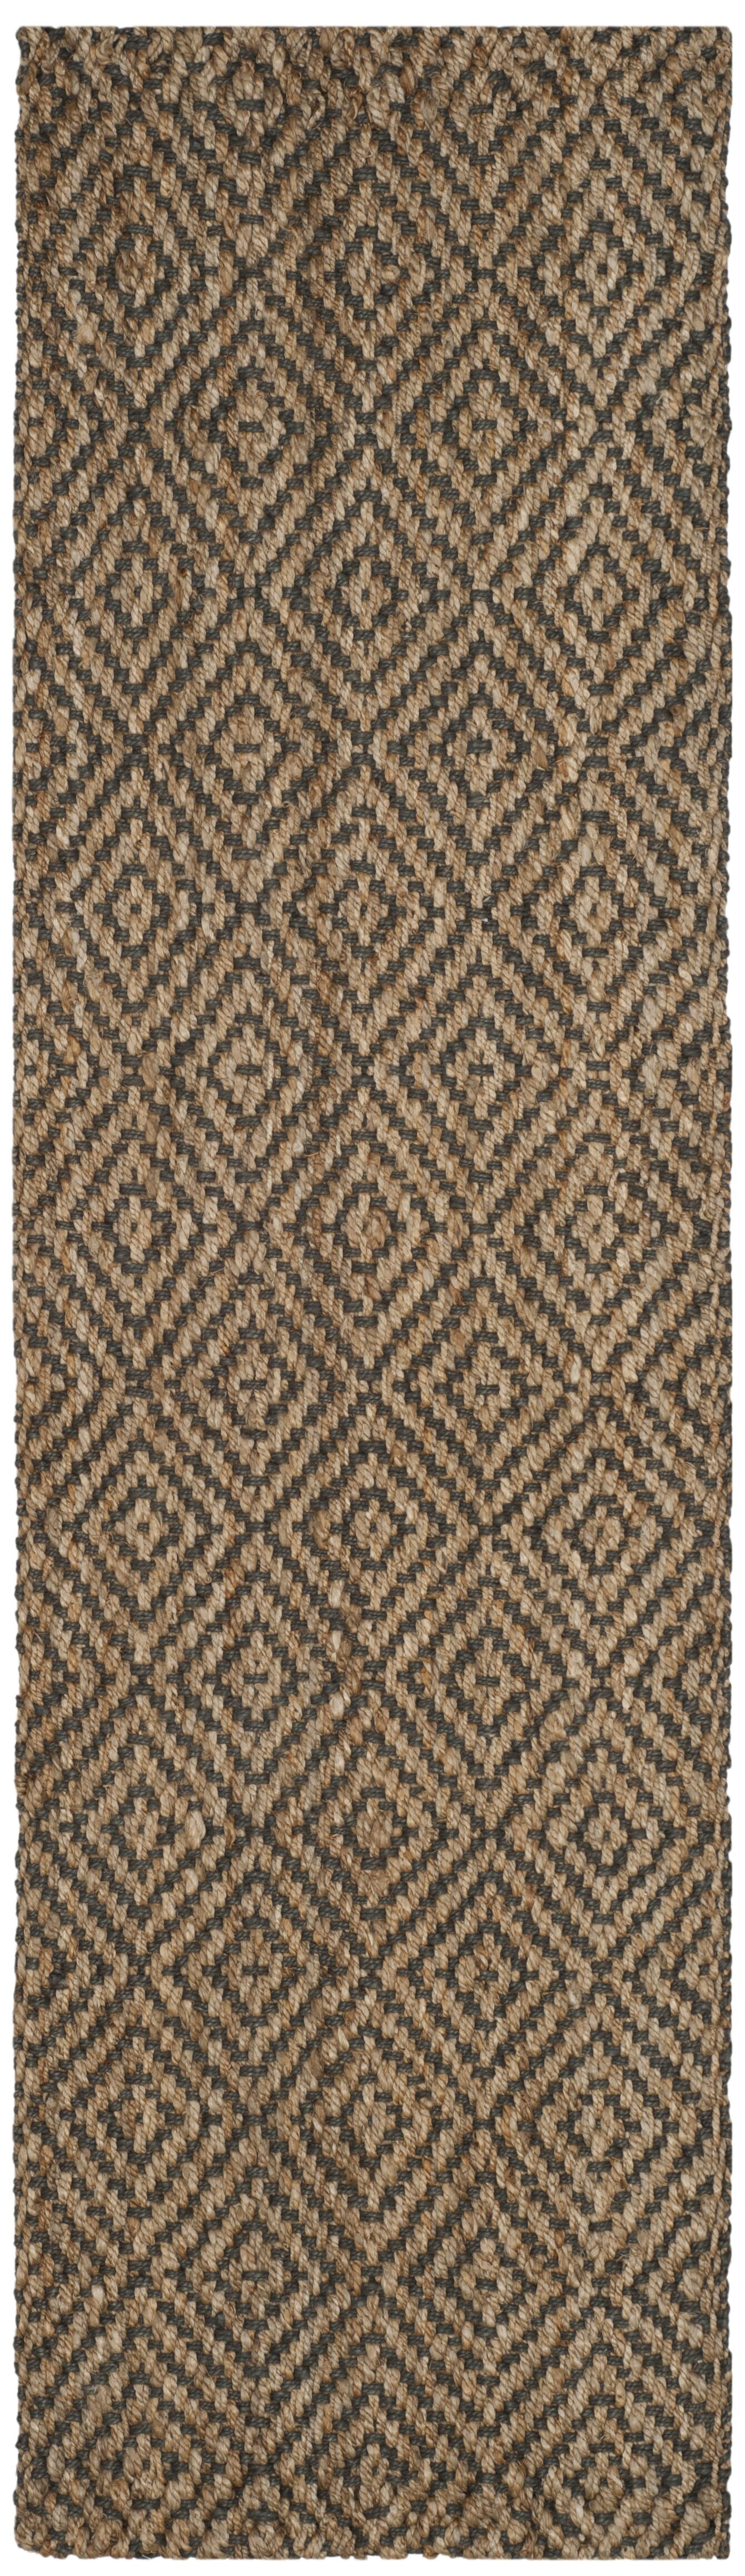 Grassmere Hand-Woven Natural/Grey Area Rug Rug Size: Runner 2'3